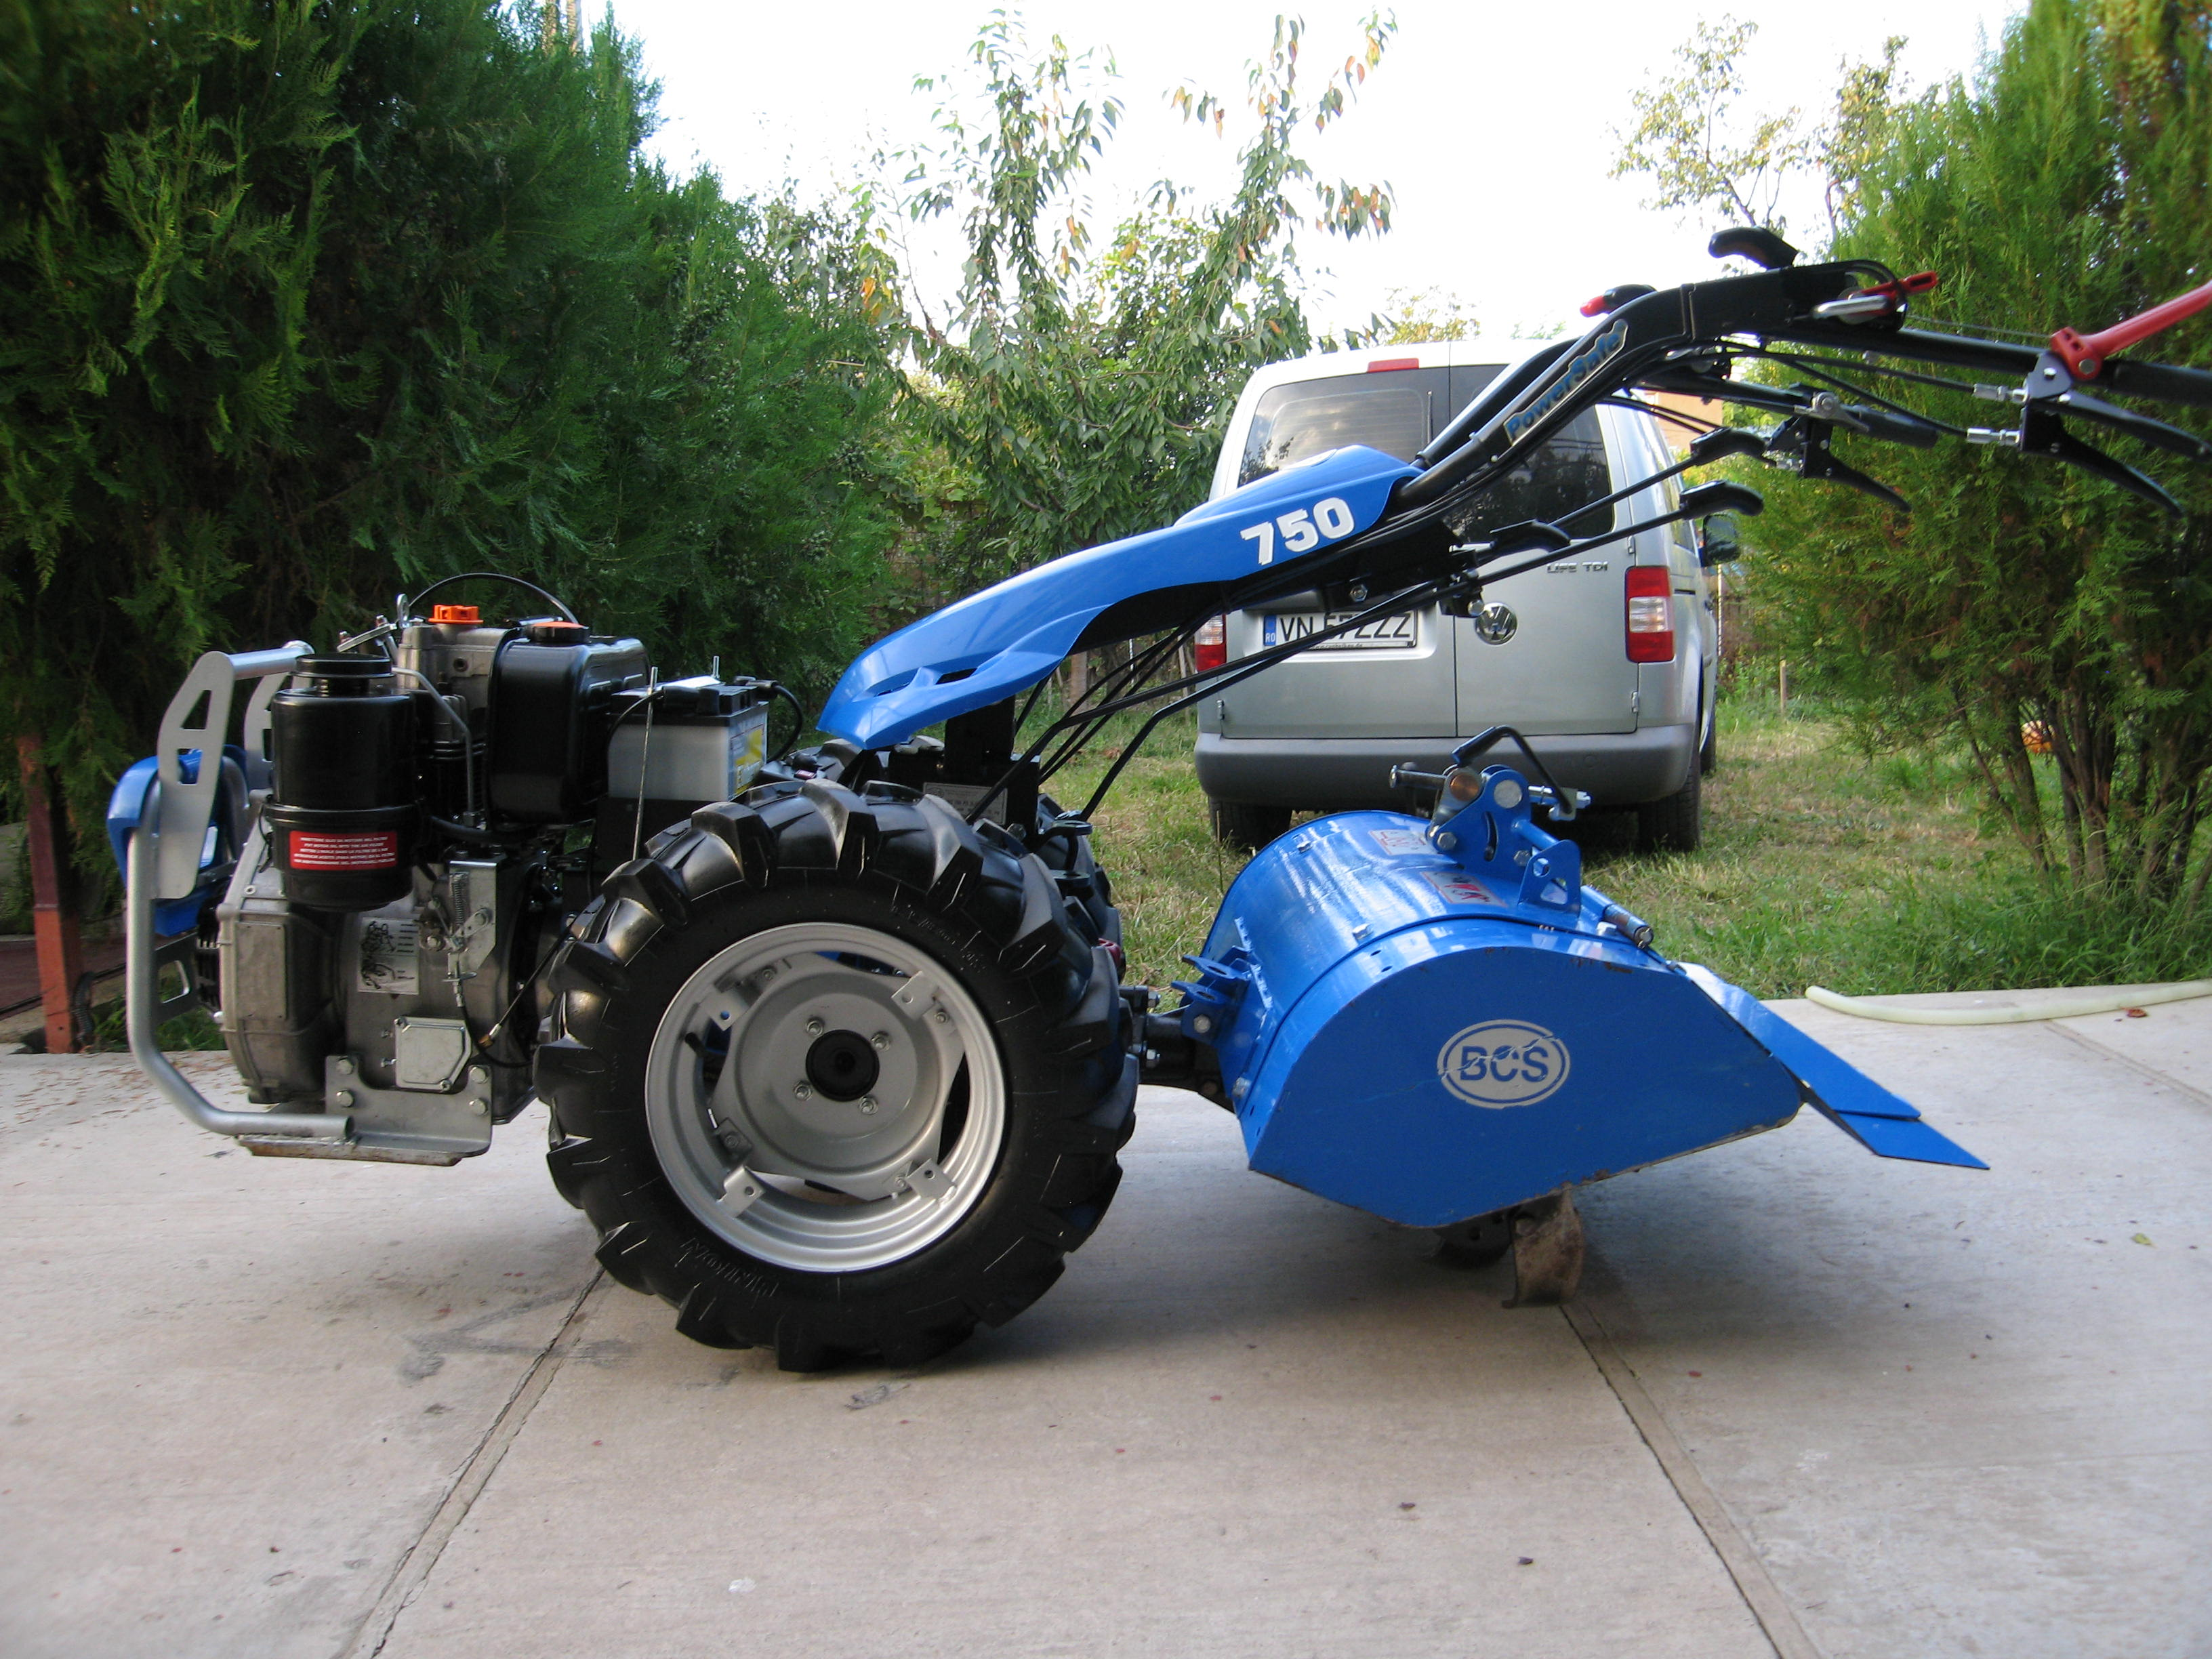 Used BCS Equipment - Dailey s Farm and BCS Shop